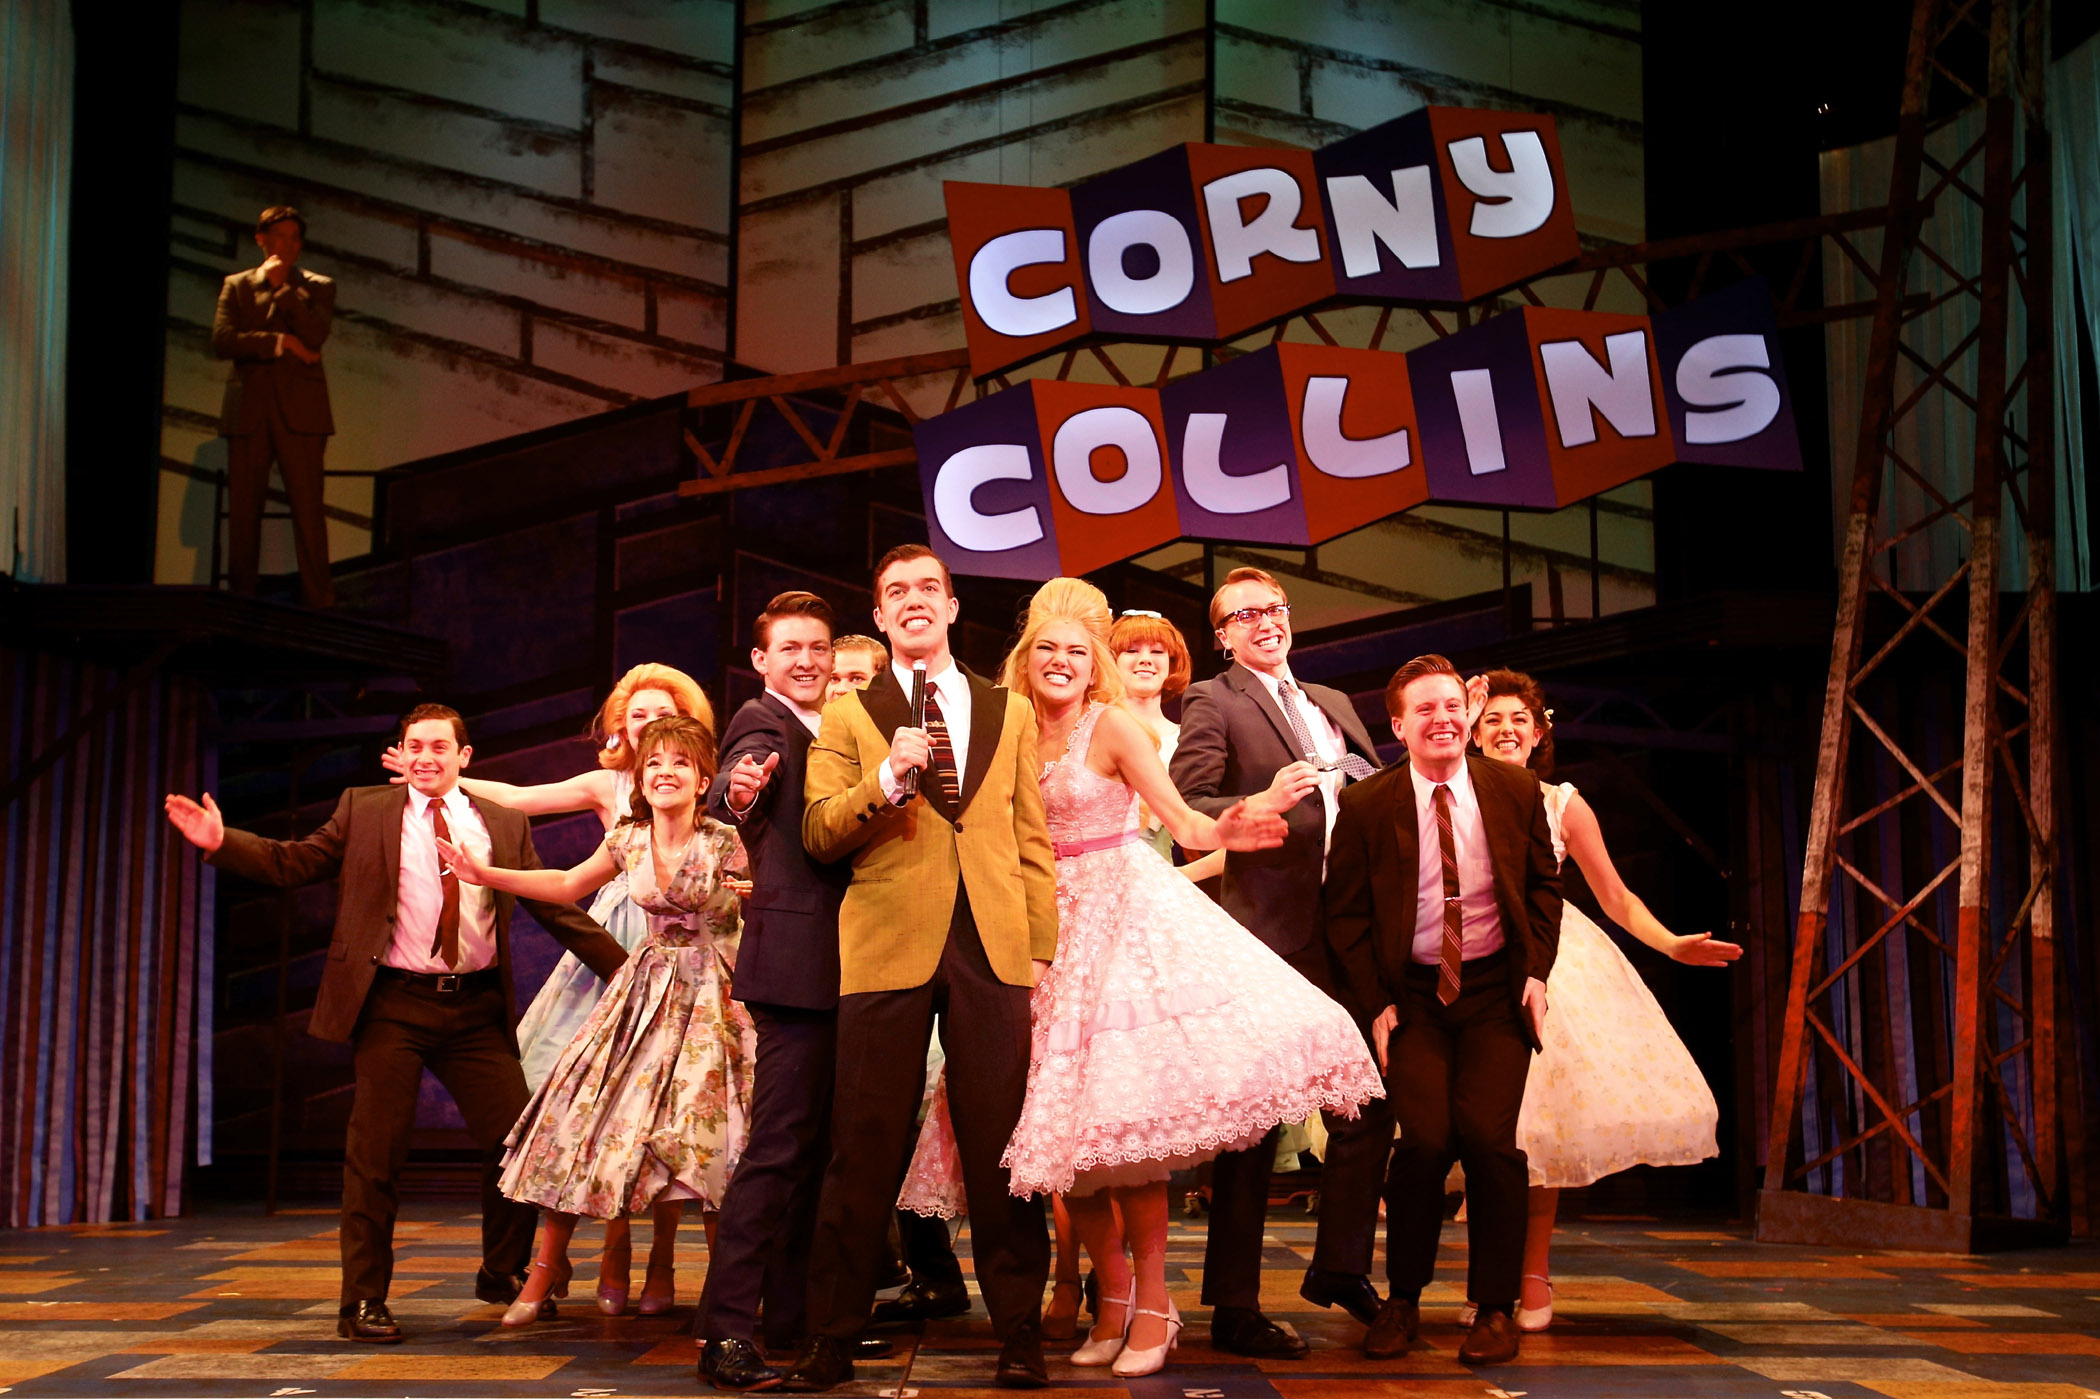 Kyle Anderson (center, as Corny Collins) and the Council Kids. Photographer Michael Davis.